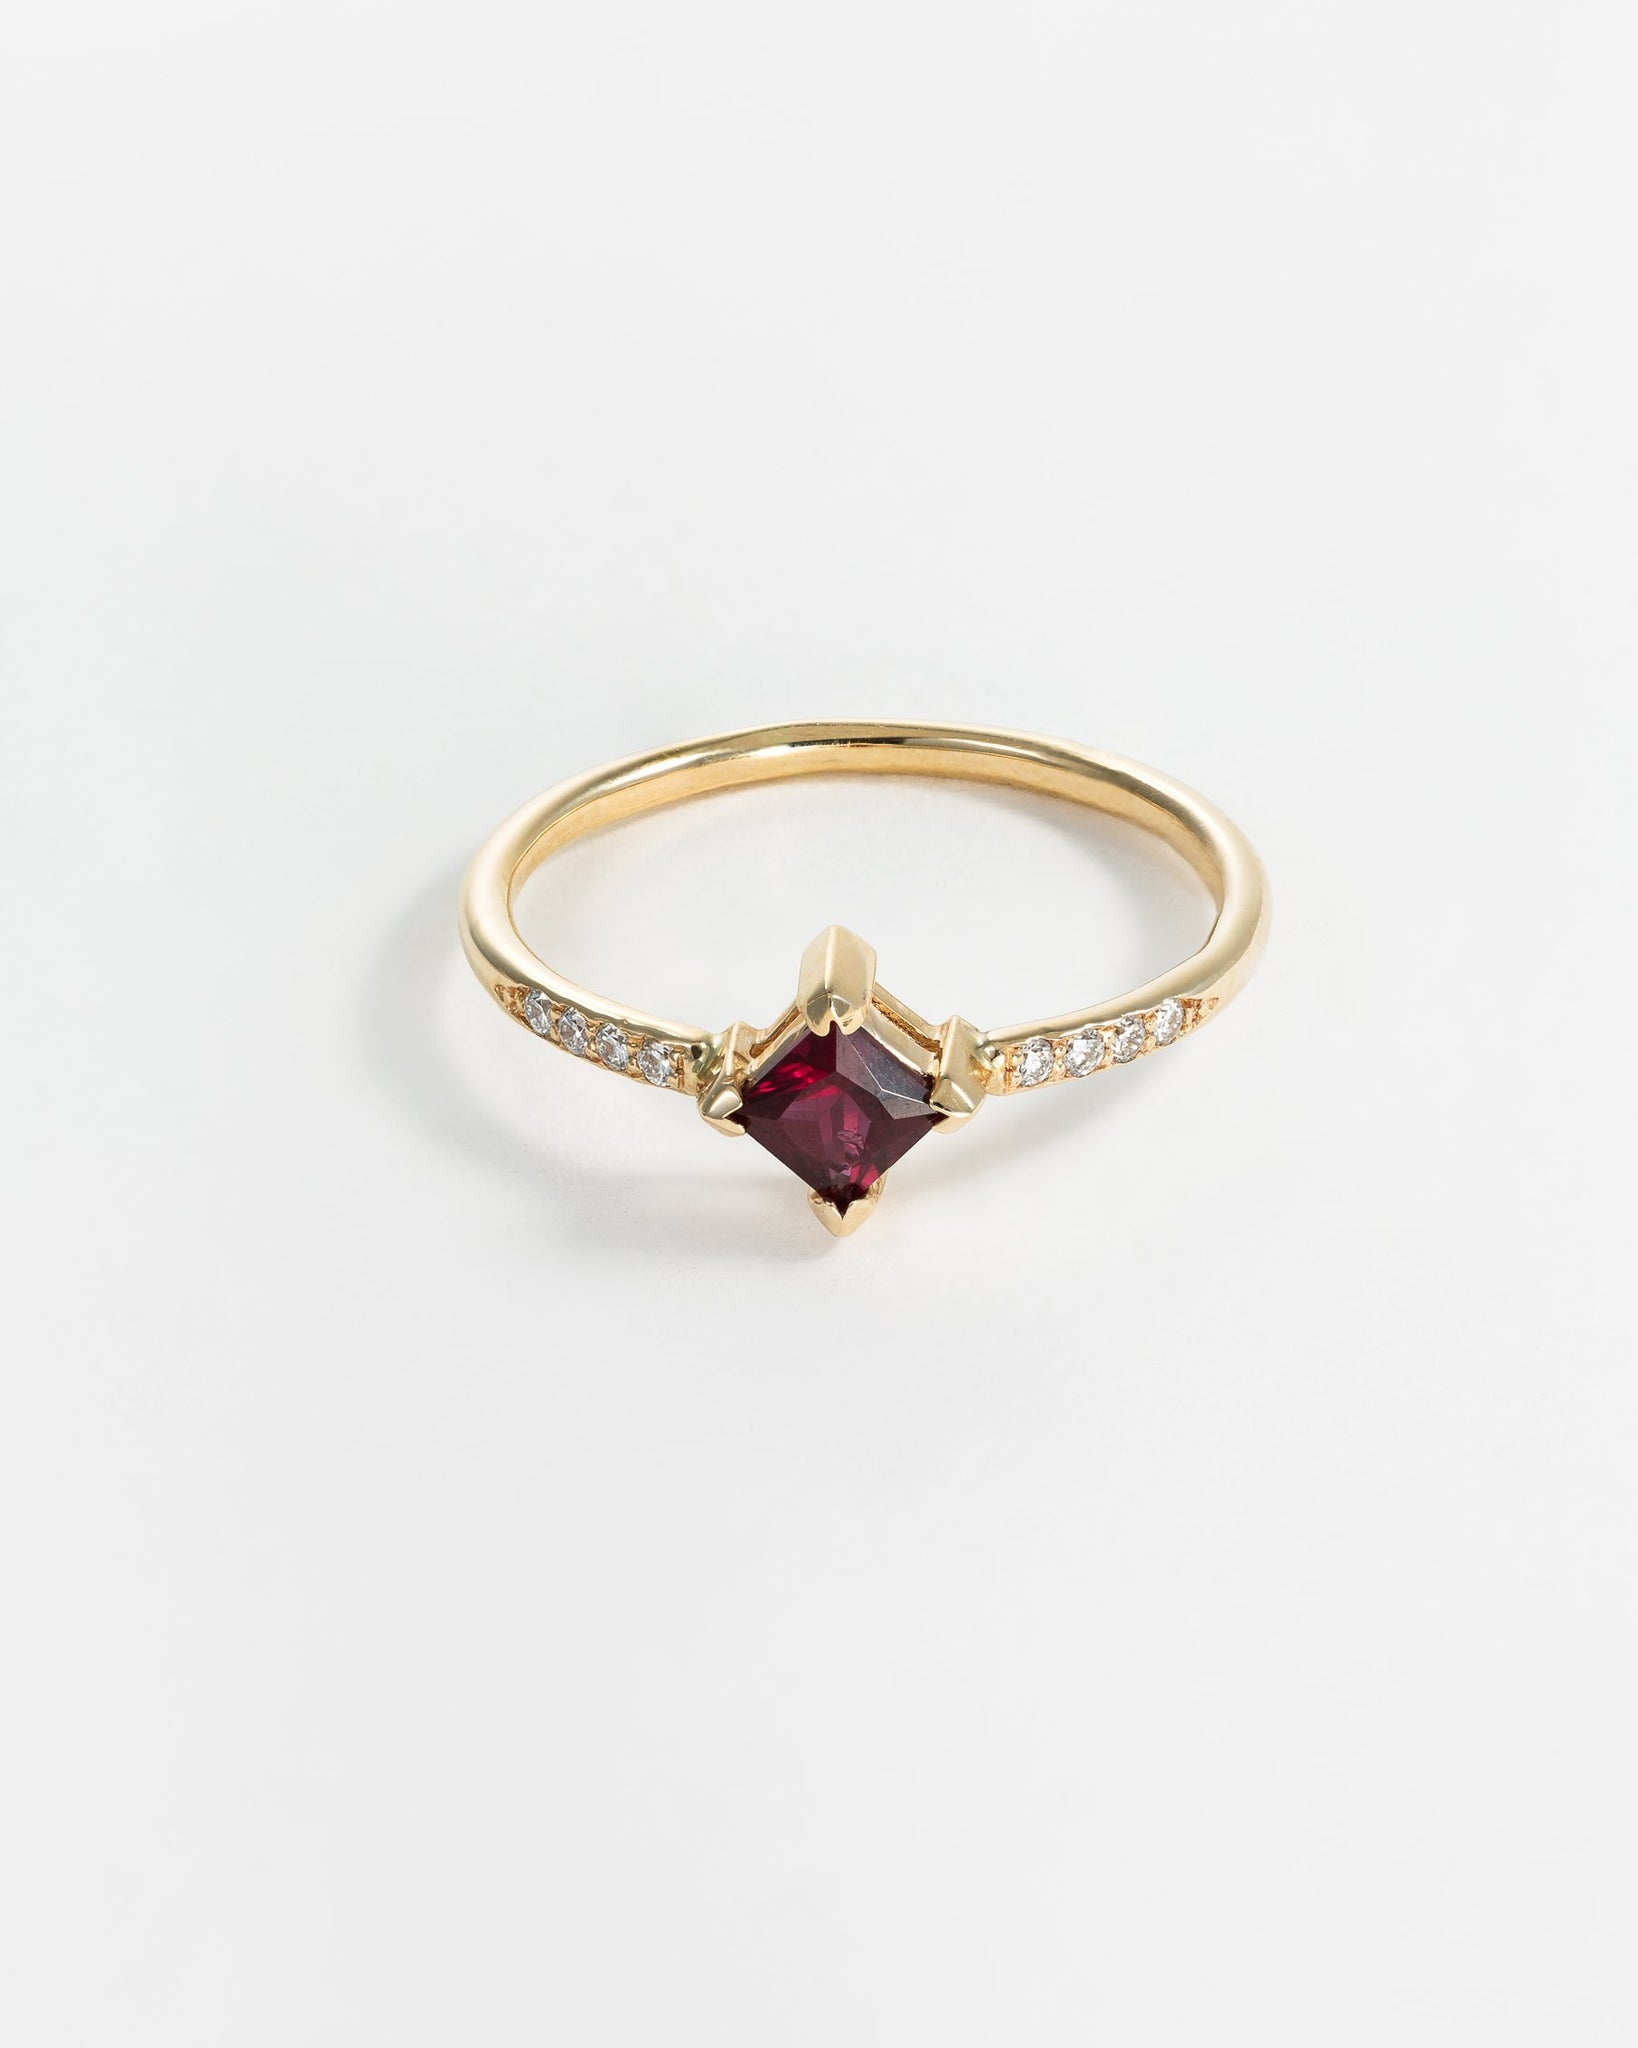 Harmony Ring in Yellow Gold with Anthill Garnet and Diamonds